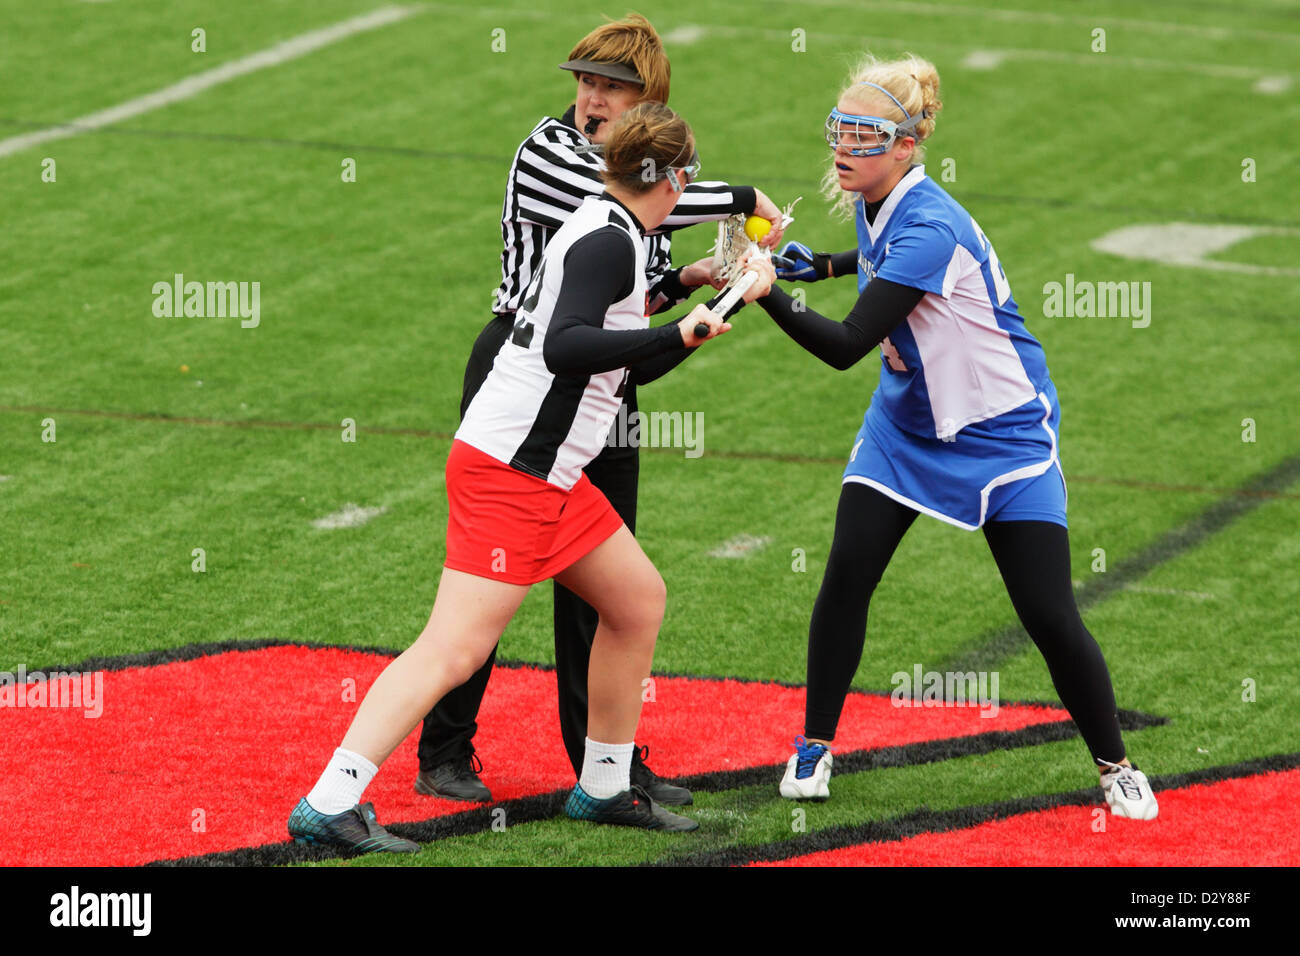 A Catholic University player (L) and Marymount University player (R) get set for a faceoff during a college lacrosse - Stock Image